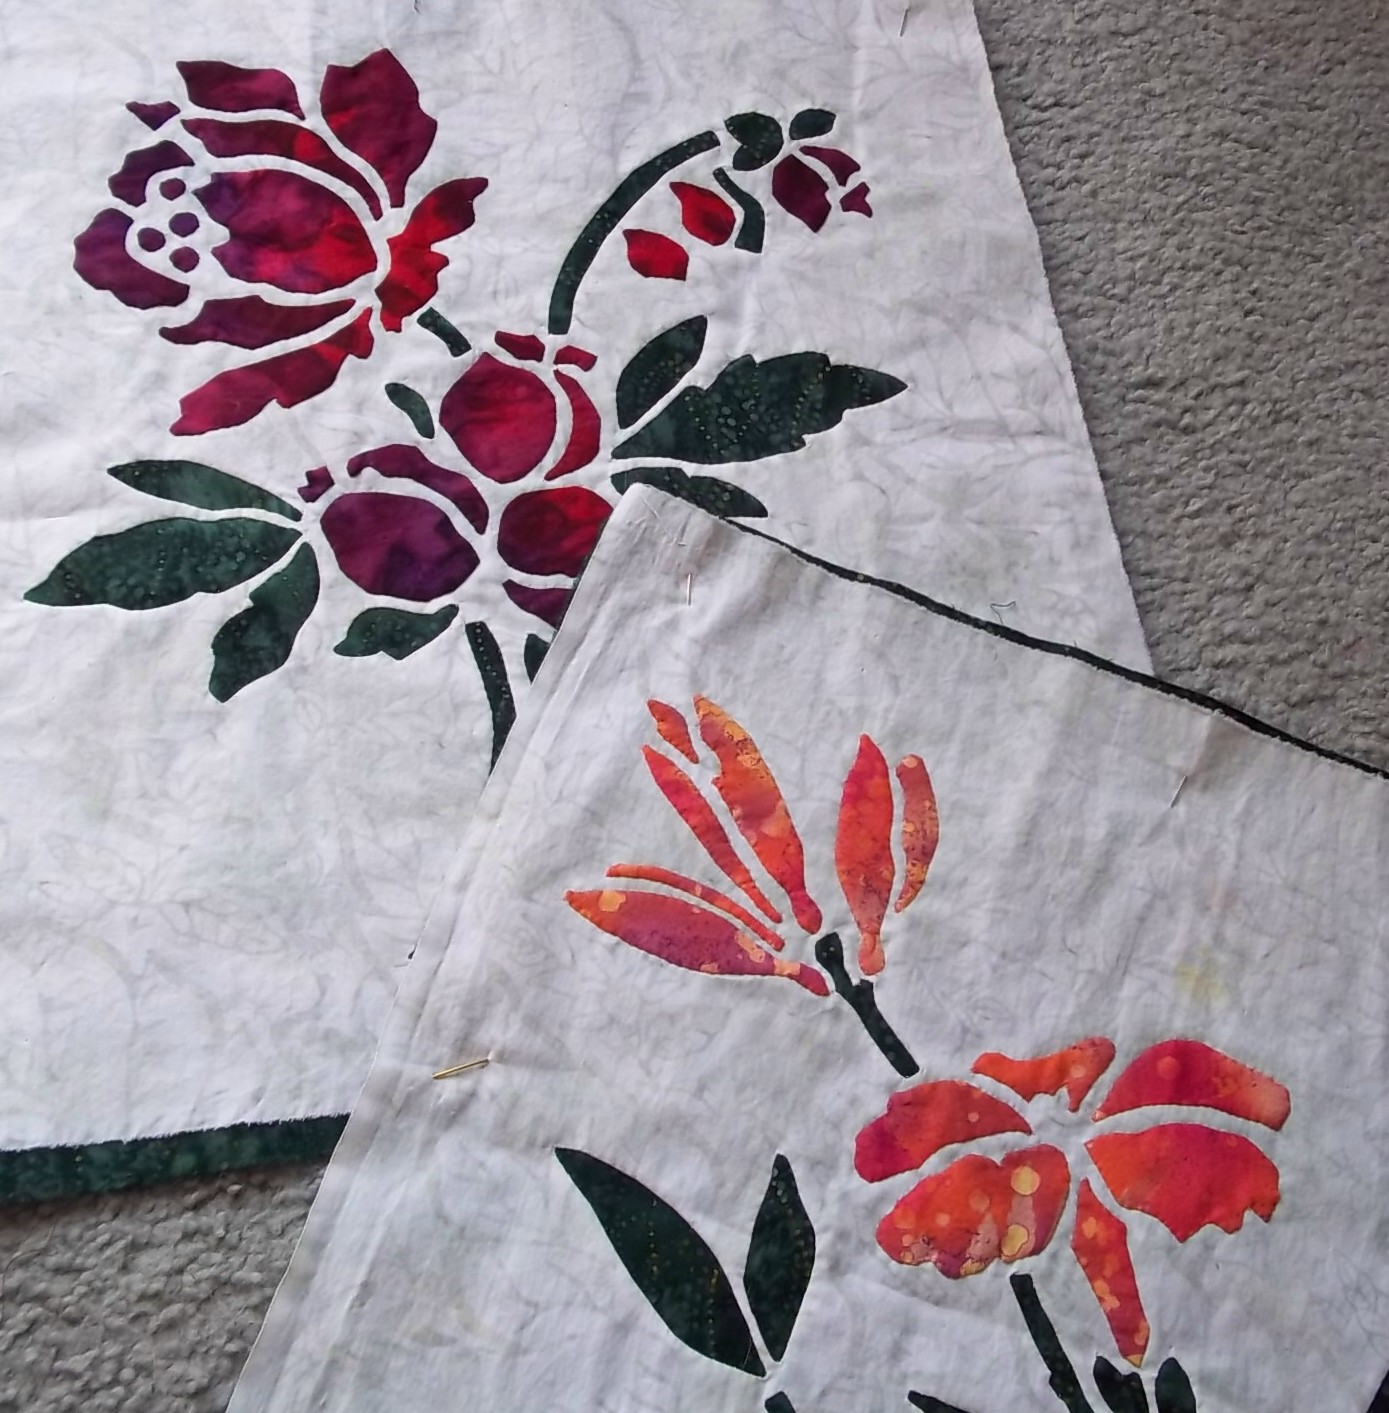 Rose    and    Lily   , flowers 1 & 2 of    Victorian Flower Garden Quilt .